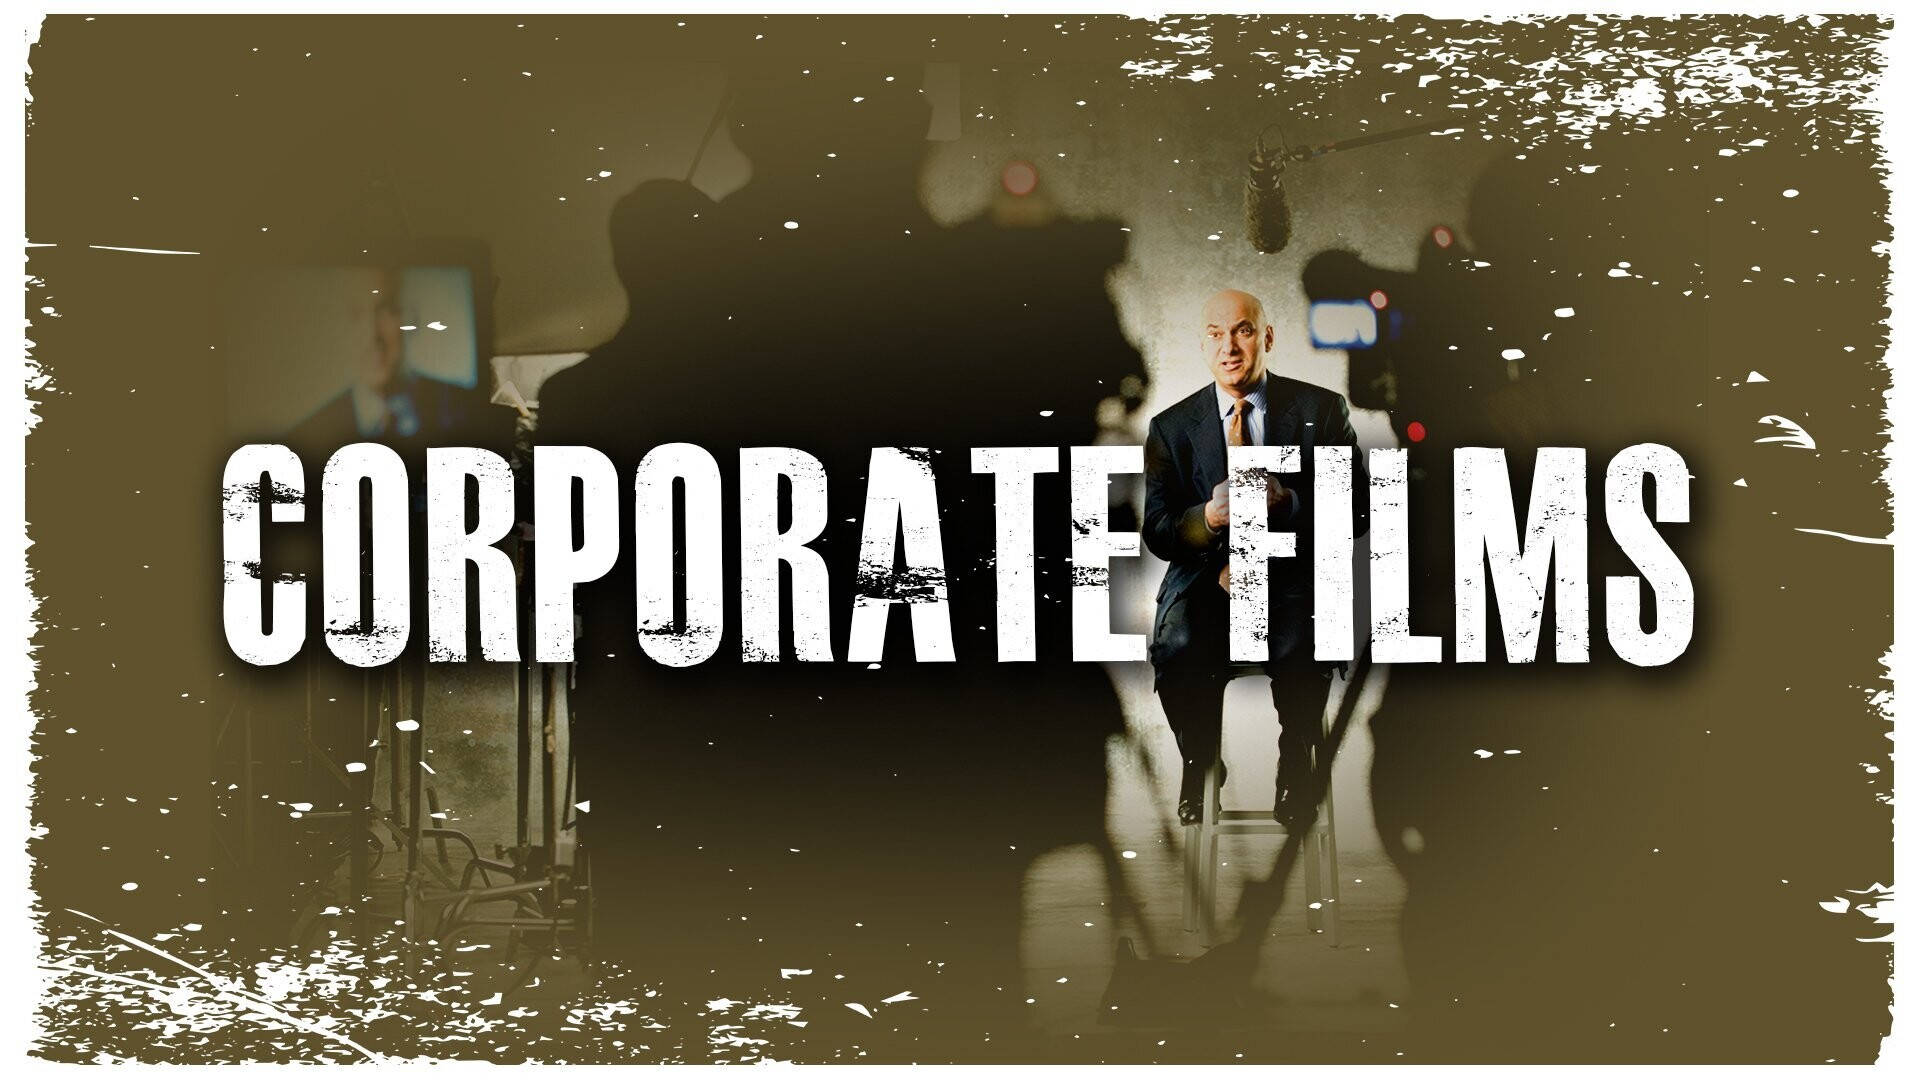 Get Corporate Video Production Company